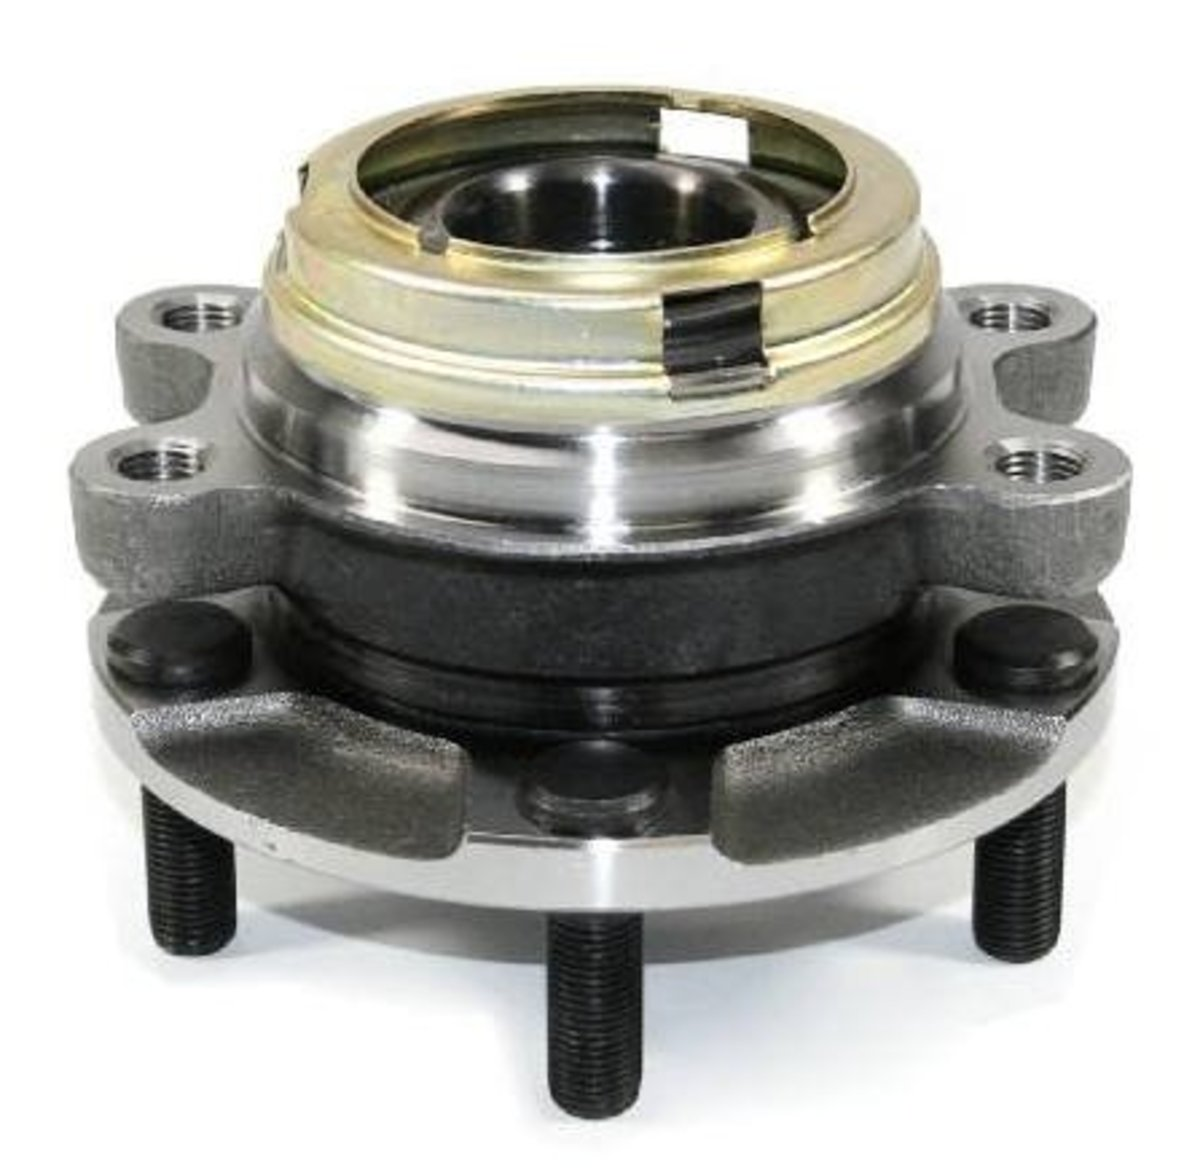 DIY Nissan Murano / Quest Front Wheel Bearing Hub Replacement